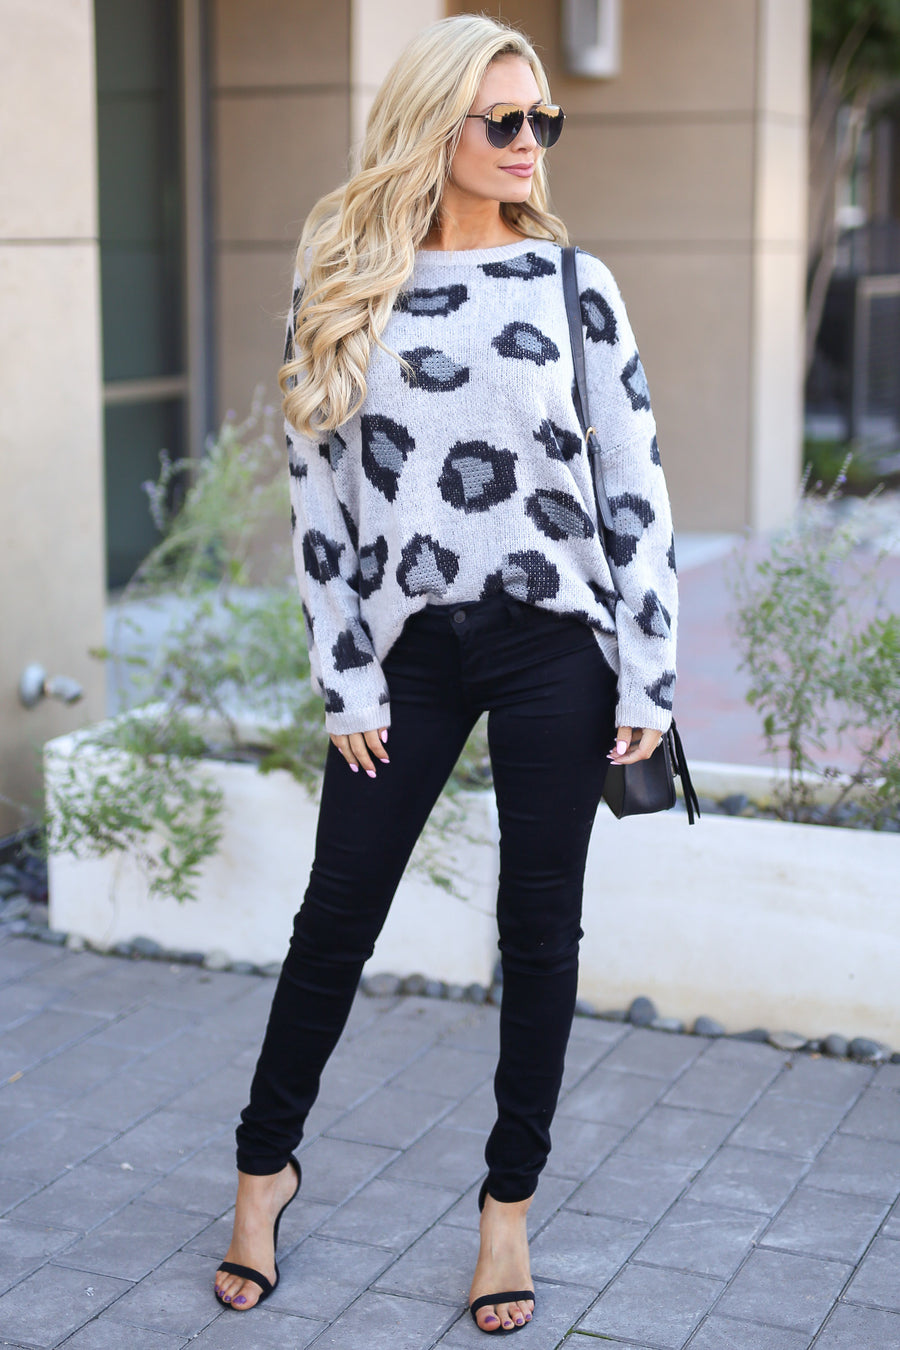 Love Spell Leopard Sweater - Grey animal print cozy pullover, fall outfit, closet candy boutique 3